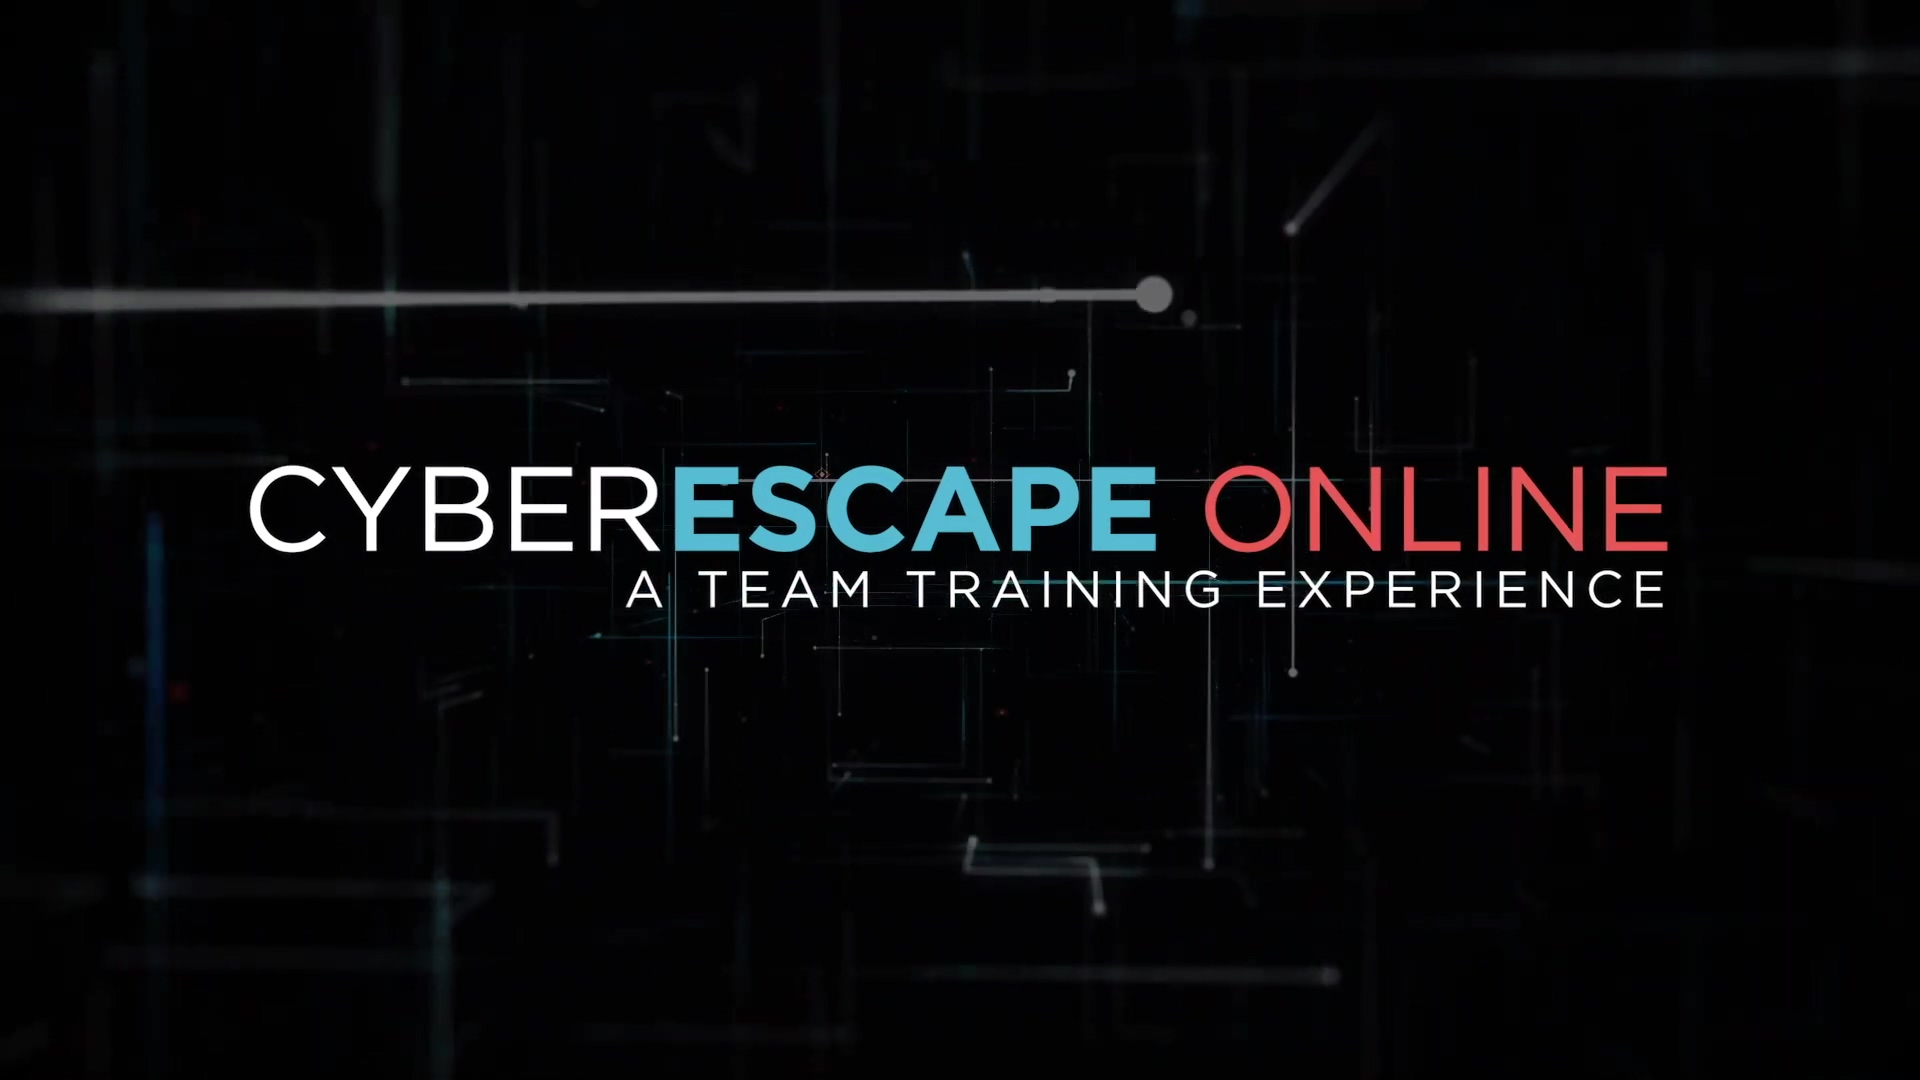 CyberEscapeOnline_Trailer_2mbps